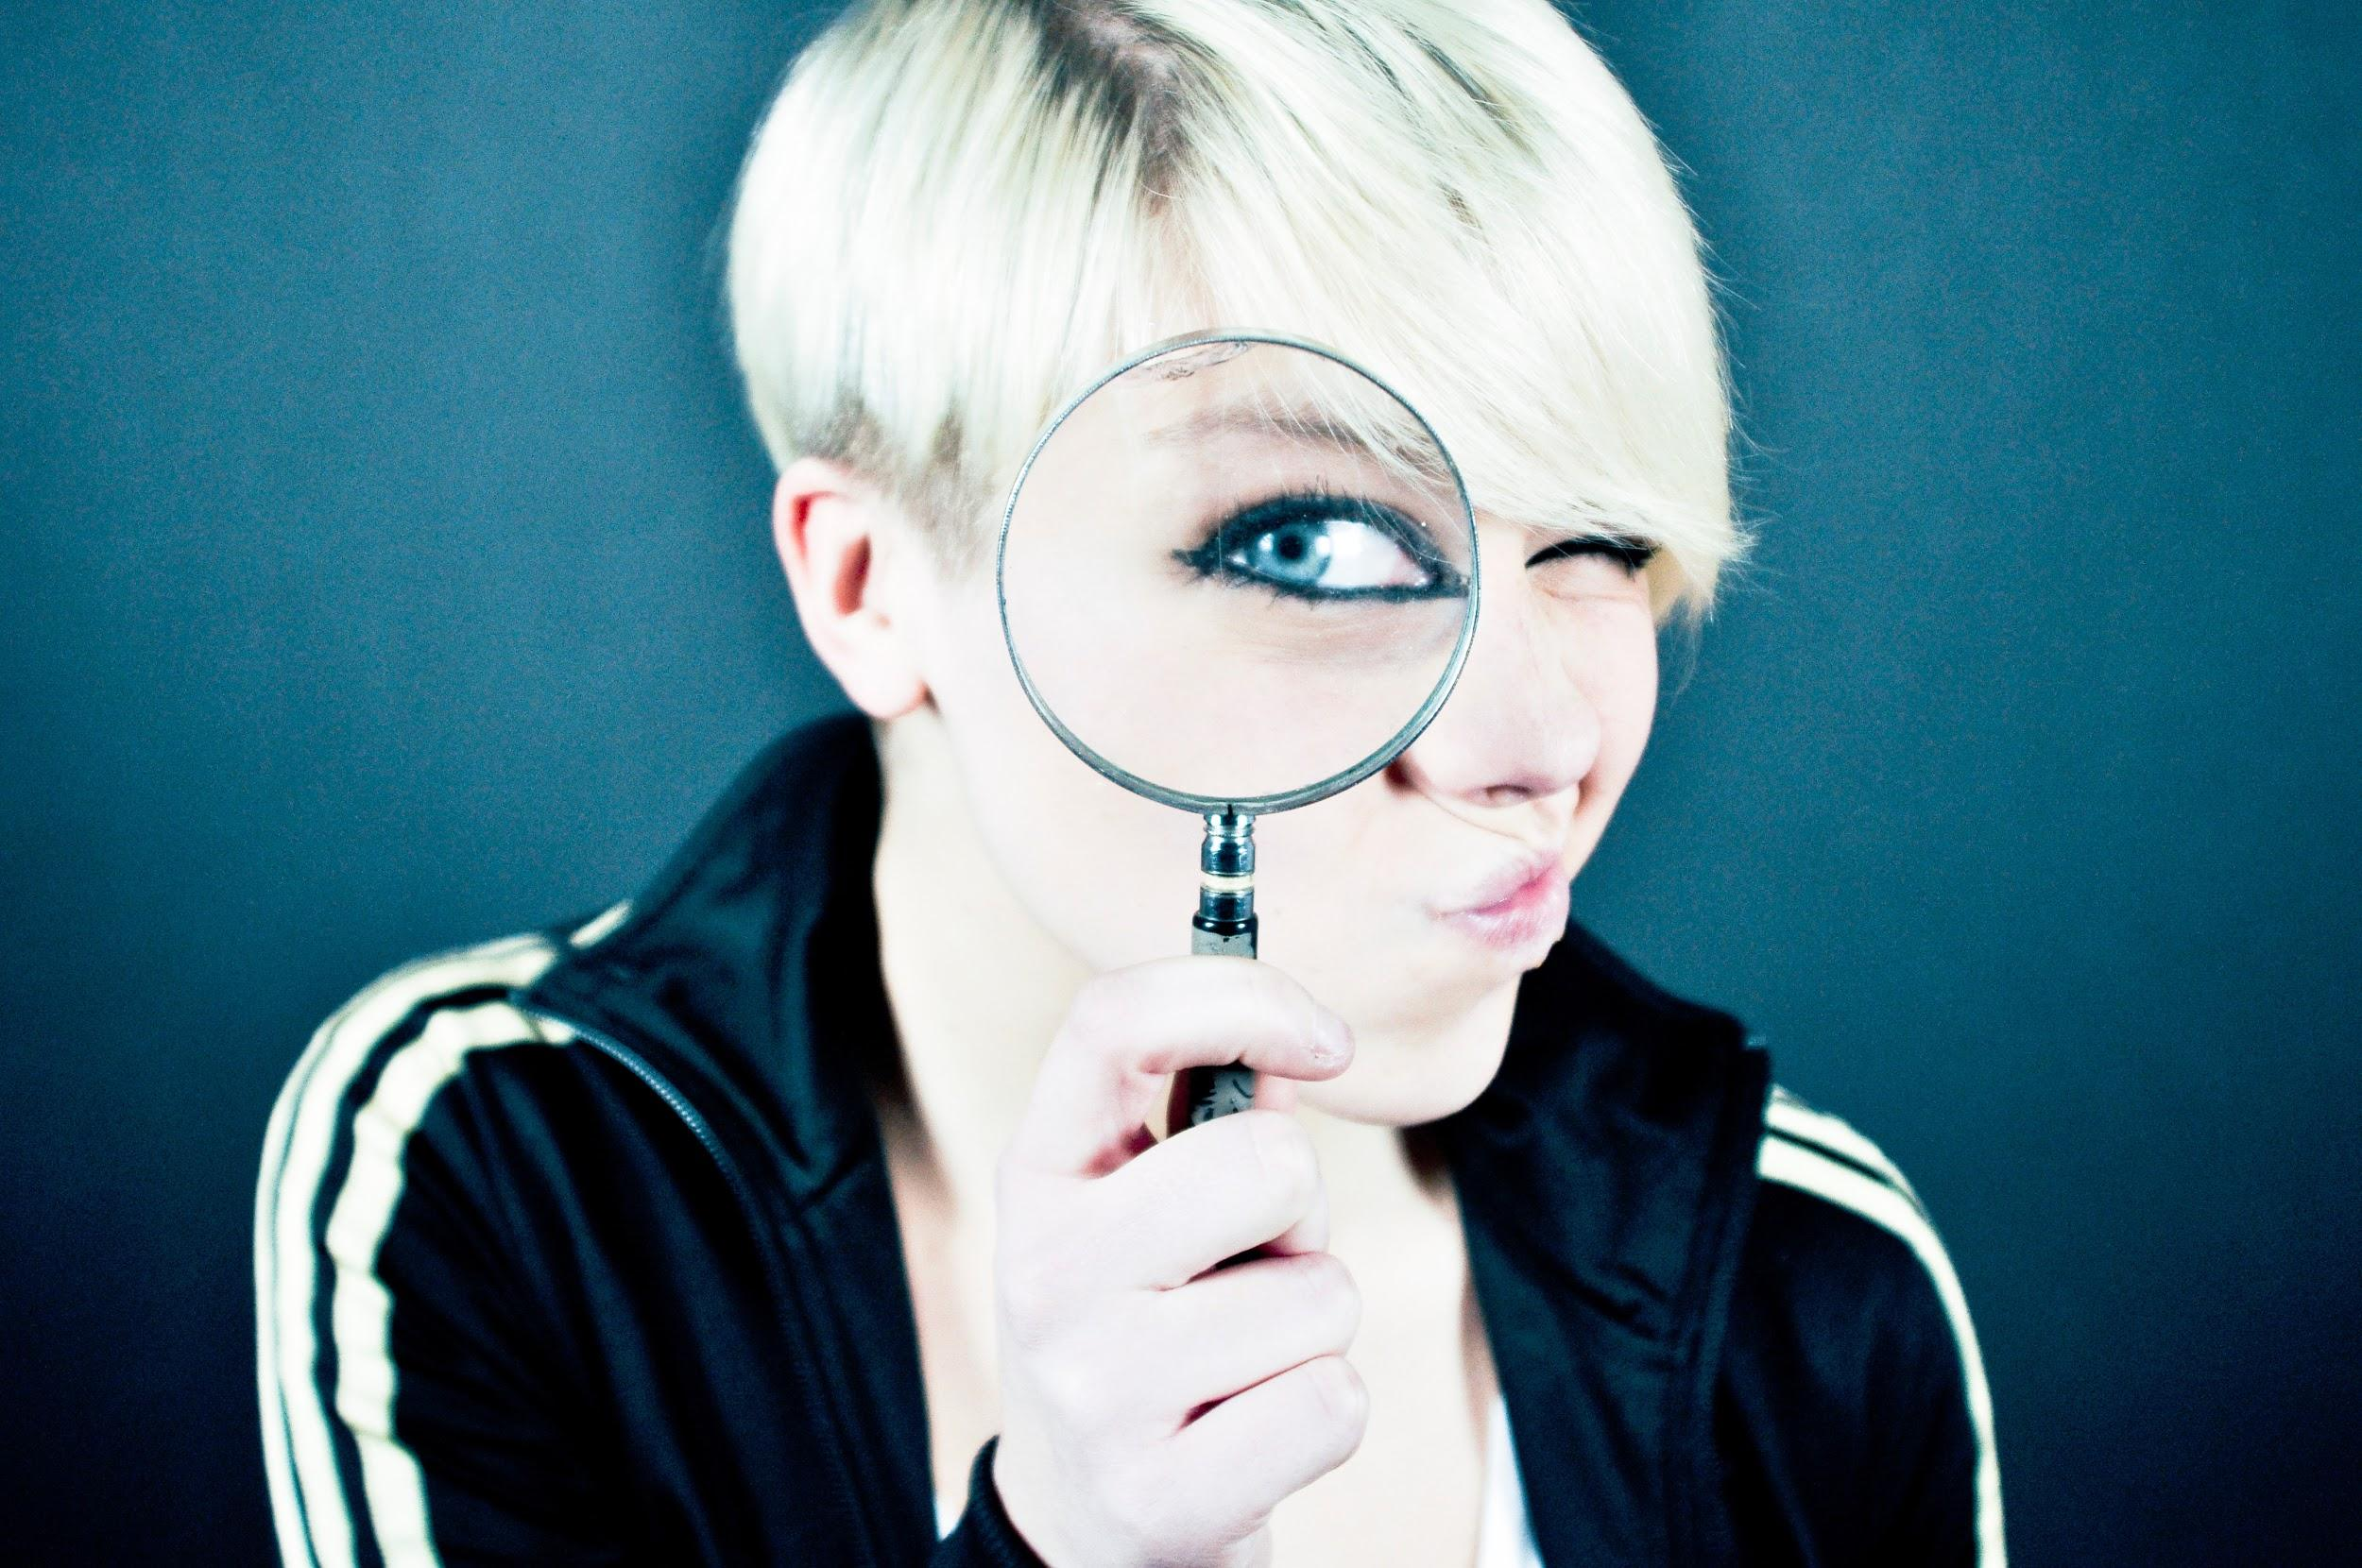 A young woman with short dyed blonde hair and wearing a black and white track jacket peers through a magnifying glass. Through the glass, we can see her blue eye, its edges heavily darkened with eye liner.